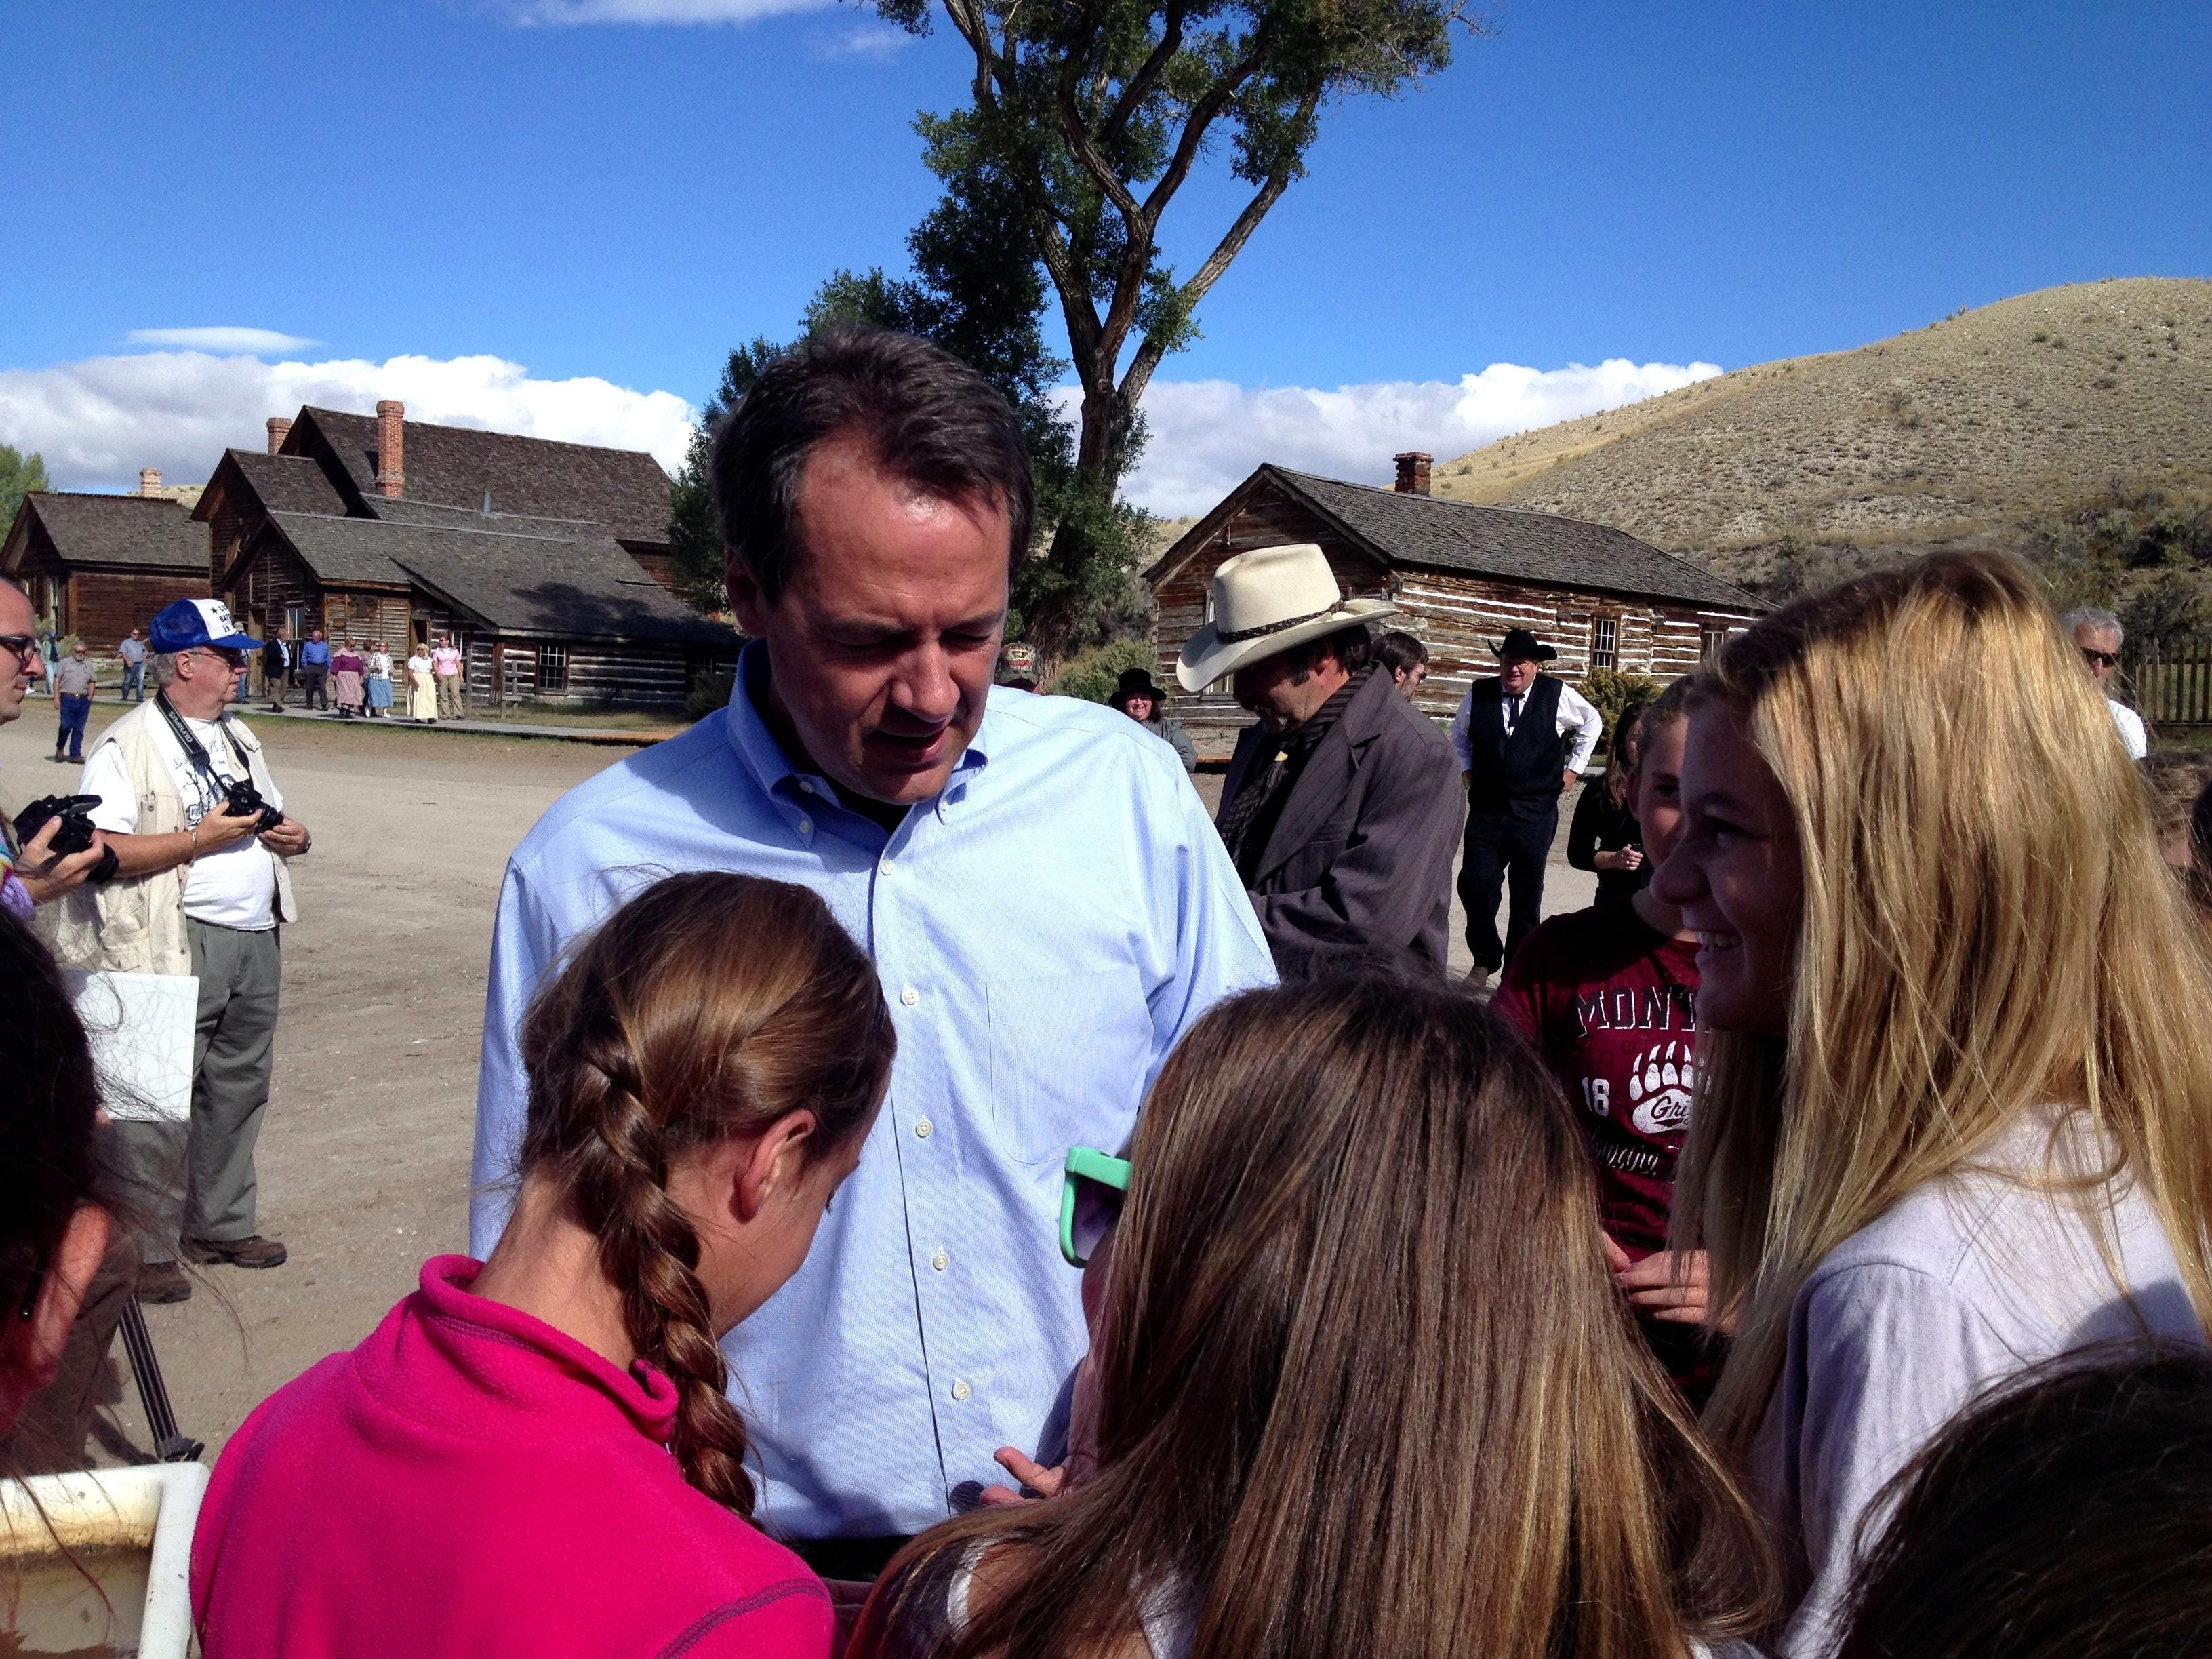 Gov. Steve Bullock talks to a group of students from on Dillon Monday at Bannack State Park. The park reopened Monday morning after being closed for seven weeks due to a flash flood that damaged most of the ghost town. TRIBUNE PHOTO/ERIN MADISON Gov. Steve Bullock talks to a group of students from Dillon Monday at Bannack State Park. The park reopened Monday morning after being closed for seven weeks due to a flash flood that damaged most of the ghost town. TRIBUNE PHOTO/ERIN MADISON